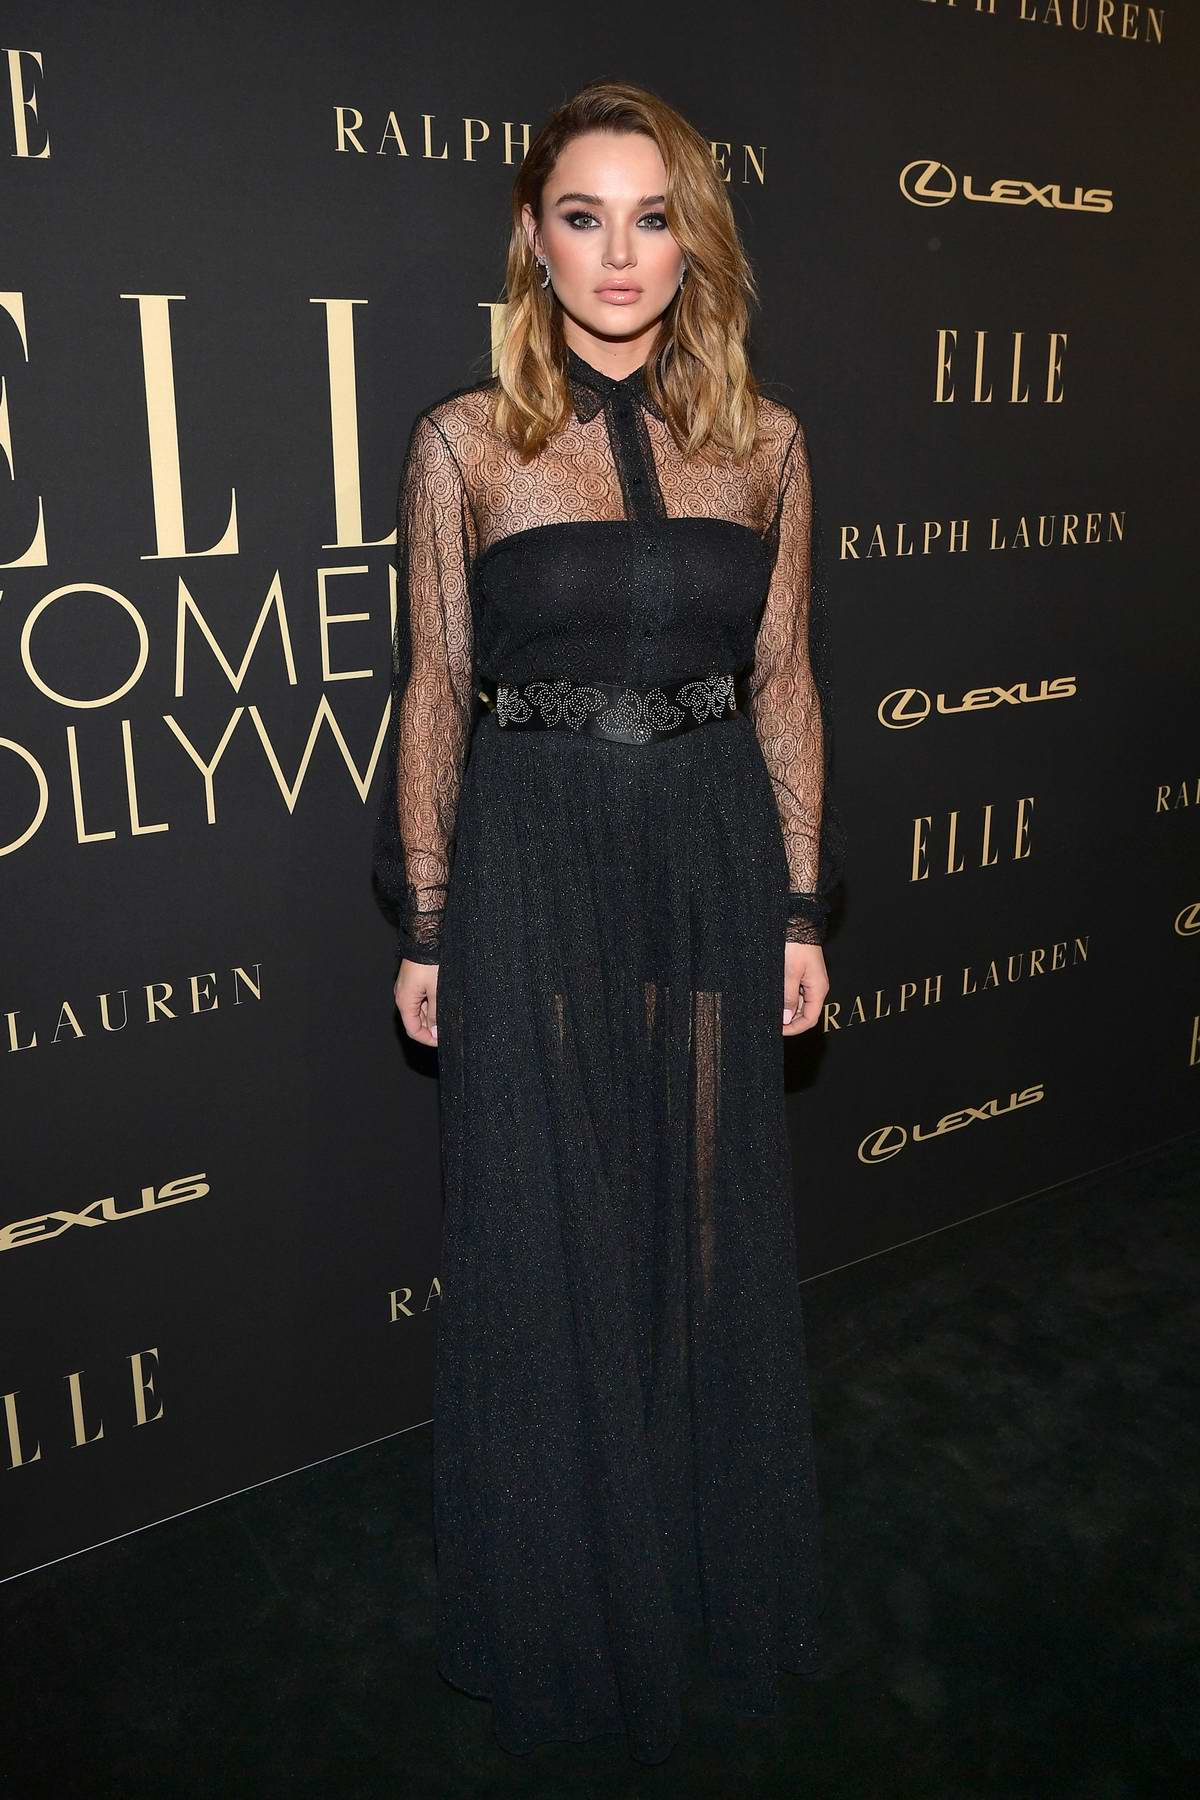 Hunter King attends ELLE's 26th Annual Women In Hollywood Celebration at The Four Seasons Hotel in Beverly Hills, California